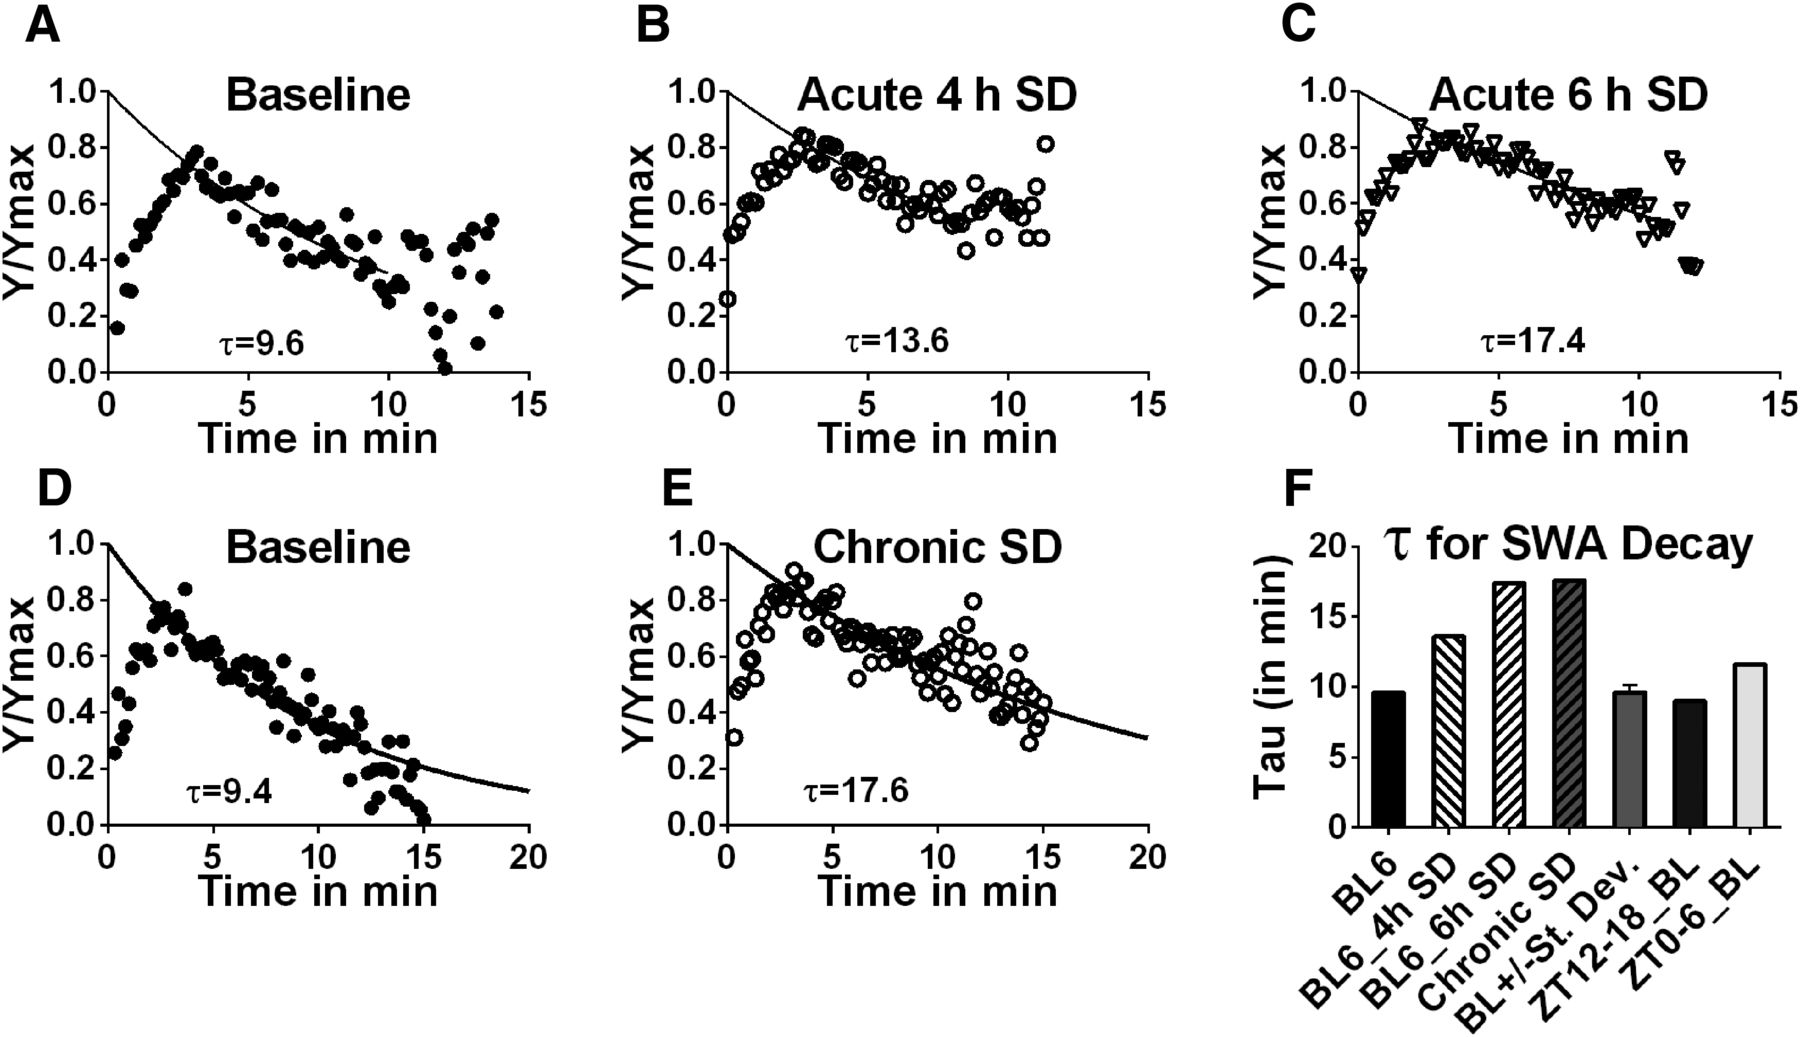 An Adenosine Mediated Glial Neuronal Circuit For Homeostatic Sleep The Time Constant Of Rc First Download Figure Open In New Tab Powerpoint 1 Swa Decay